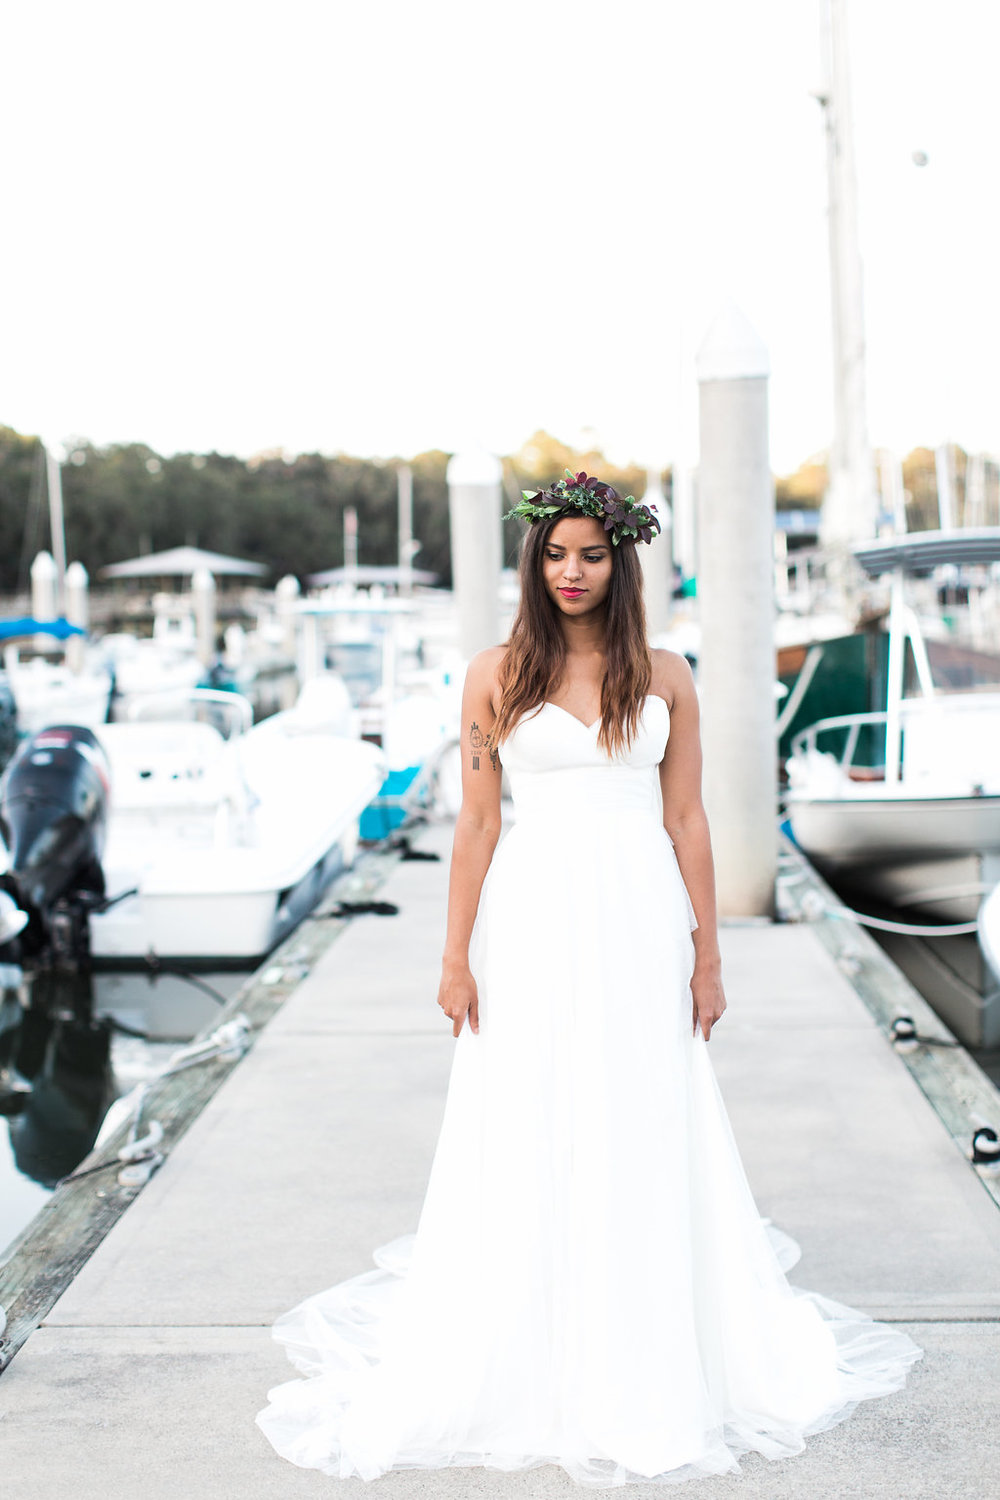 apt-b-photography-ti-adora-7655-point-desprit-wedding-dress-swiss-dot-wedding-dress-marina-wedding-coastal-wedding-ivory-and-beau-bridal-boutique-savannah-wedding-dresses-savannah-bridal-gowns-adele-amelia-savanah-florist-10.jpg